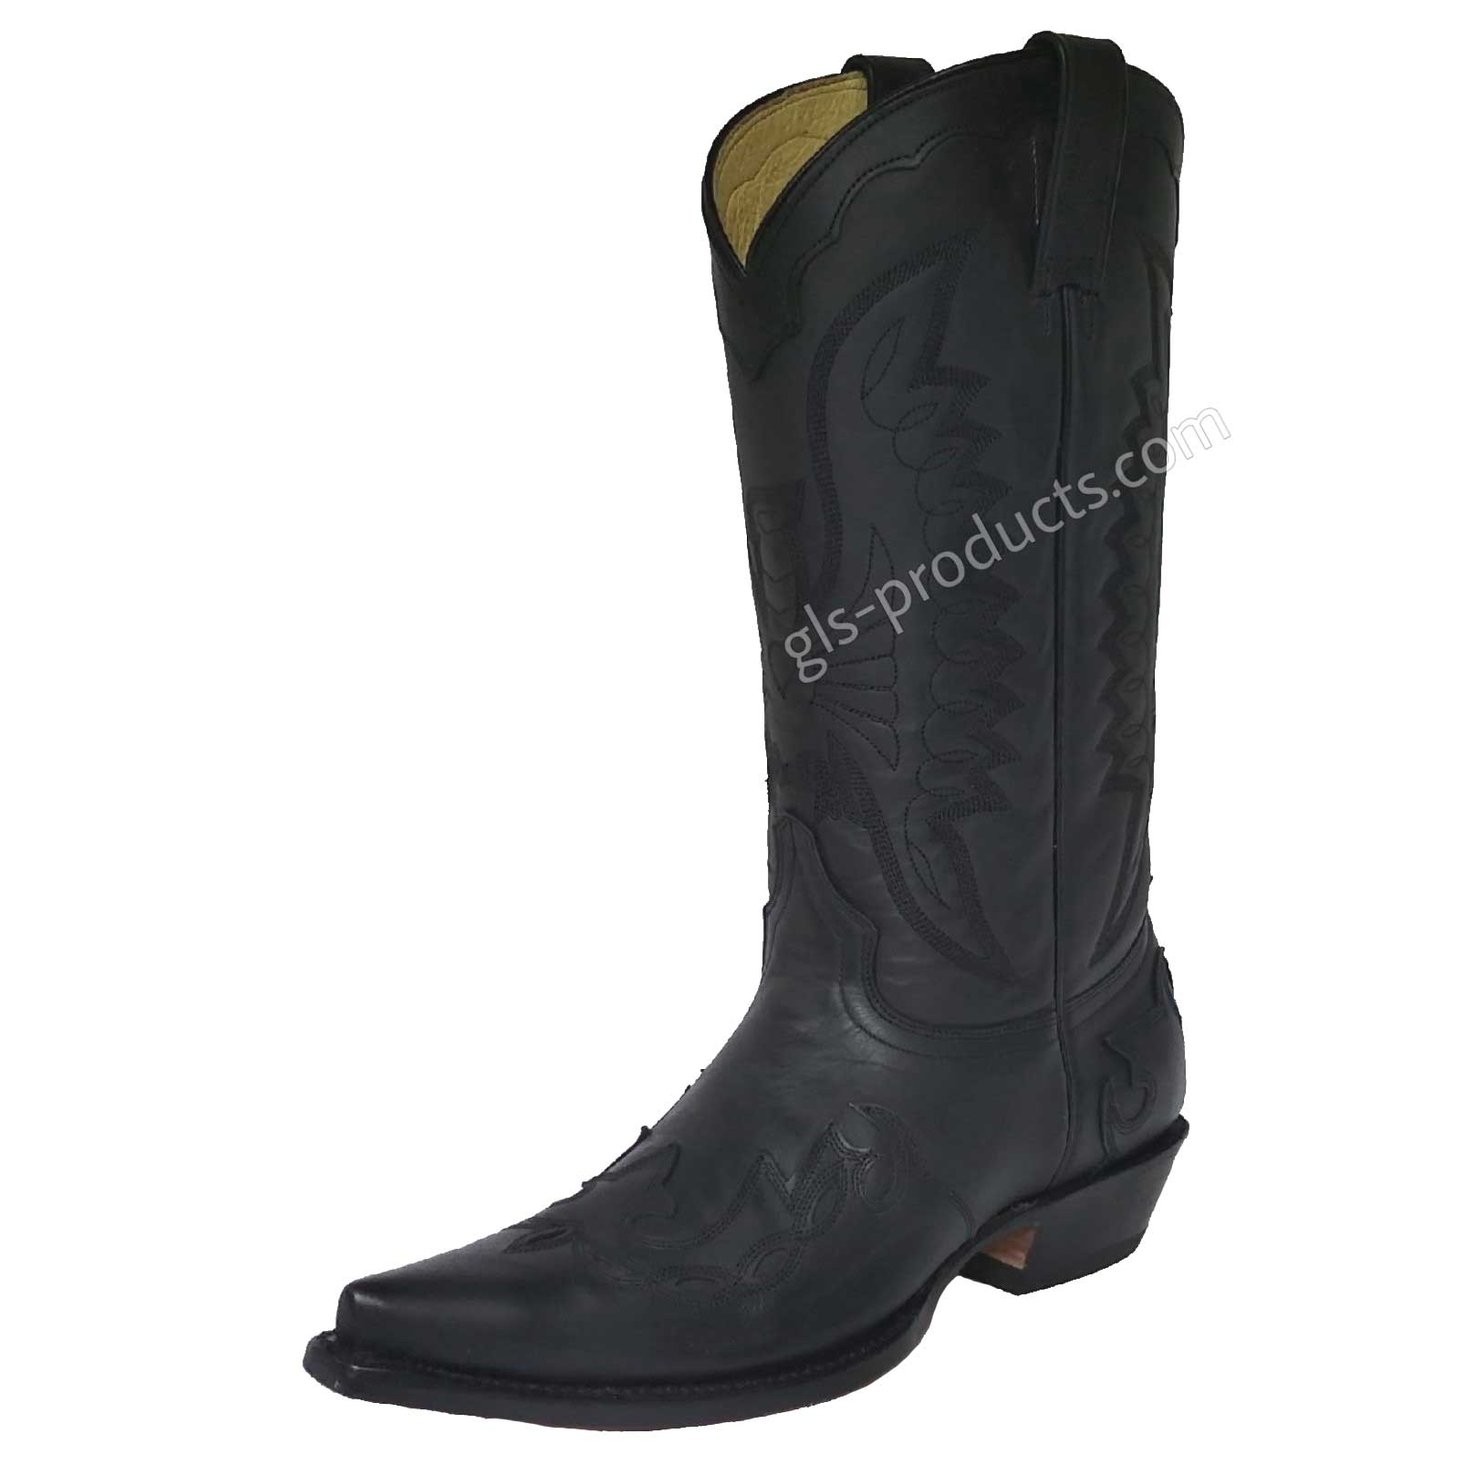 Rancho 5024 Western Boots with Flames